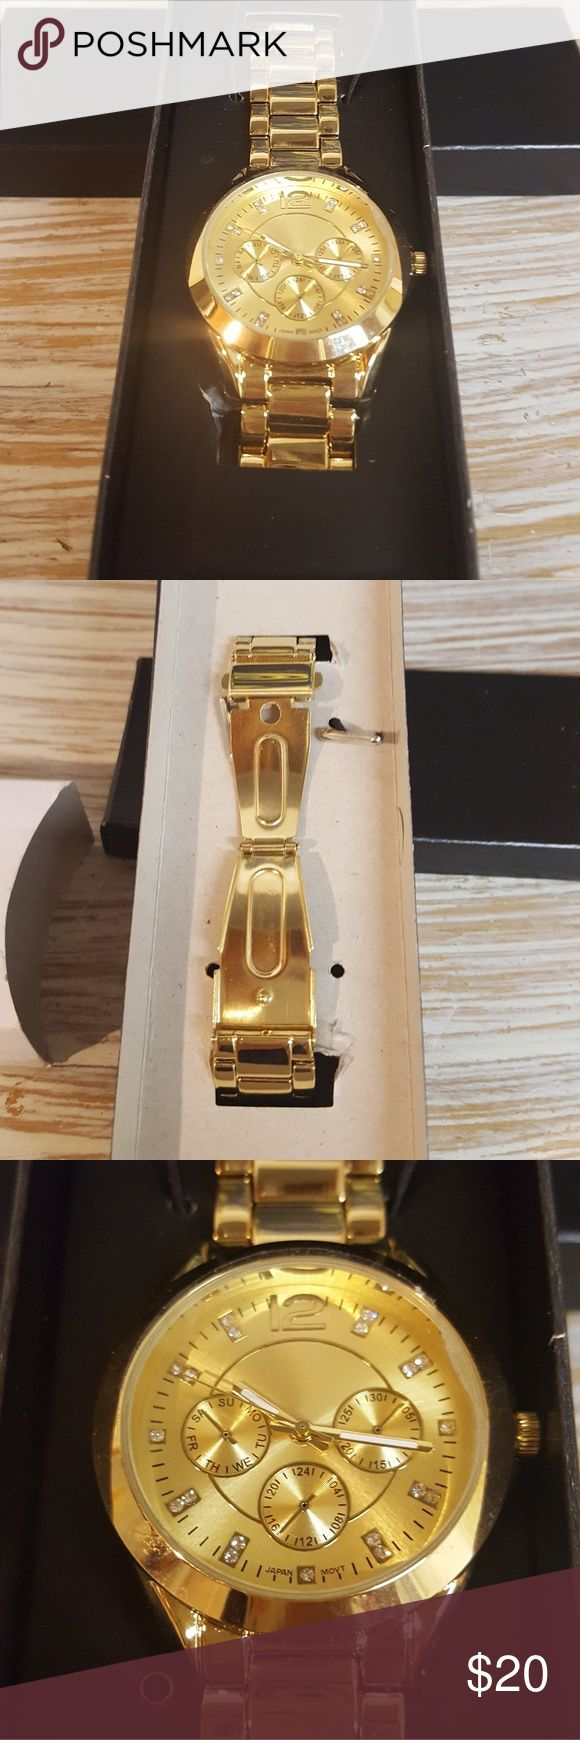 ⭐New Price⭐ Avon Bold Bracelet Watch NIB Avon Bold Goldtone Bracelet Watch. Women's watch. It needs a new battery, which is the reason for the lower price. Avon Accessories Watches